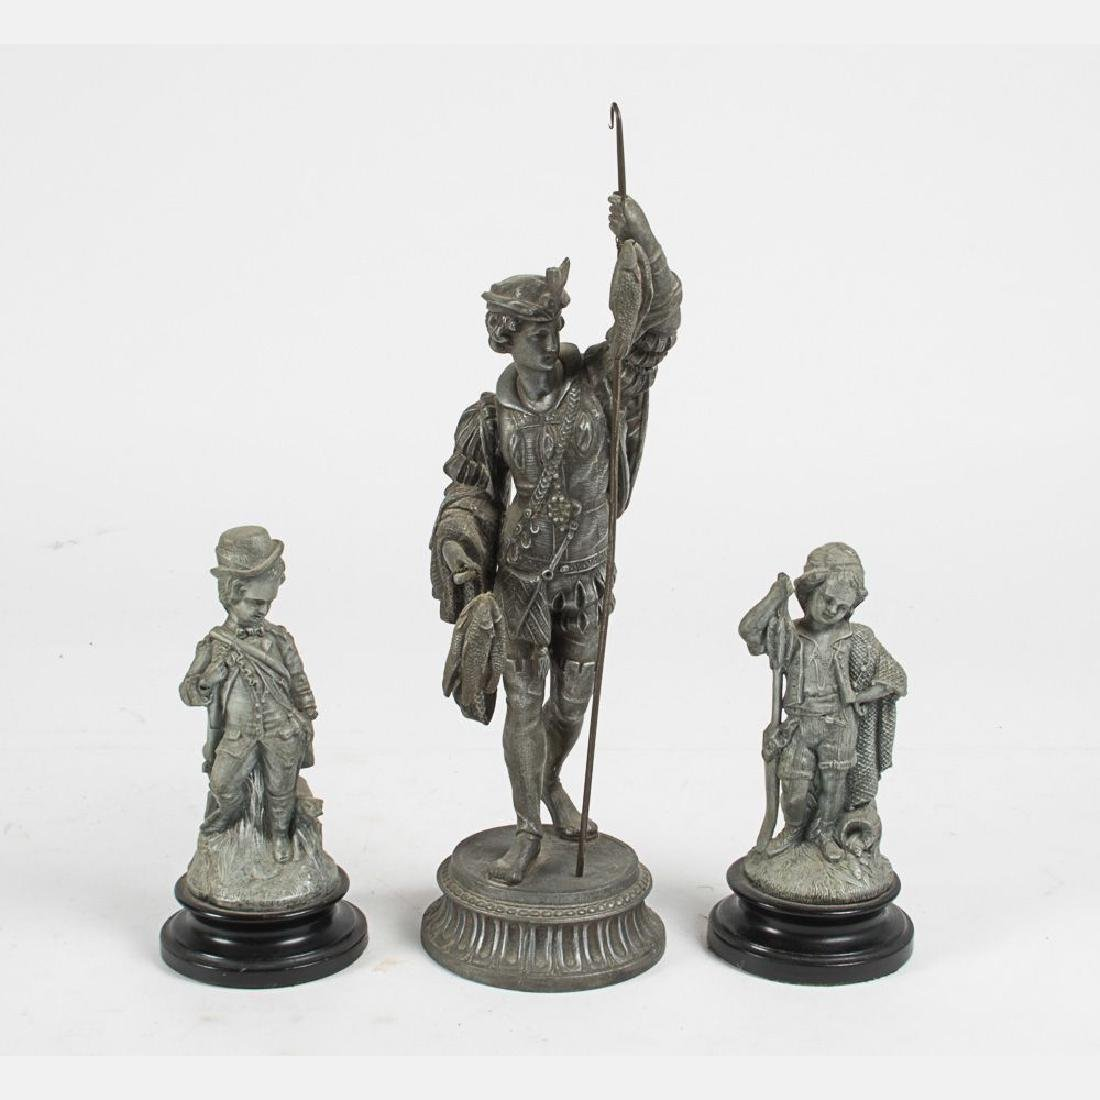 A Group of Three Spelter Figures, 20th Century.